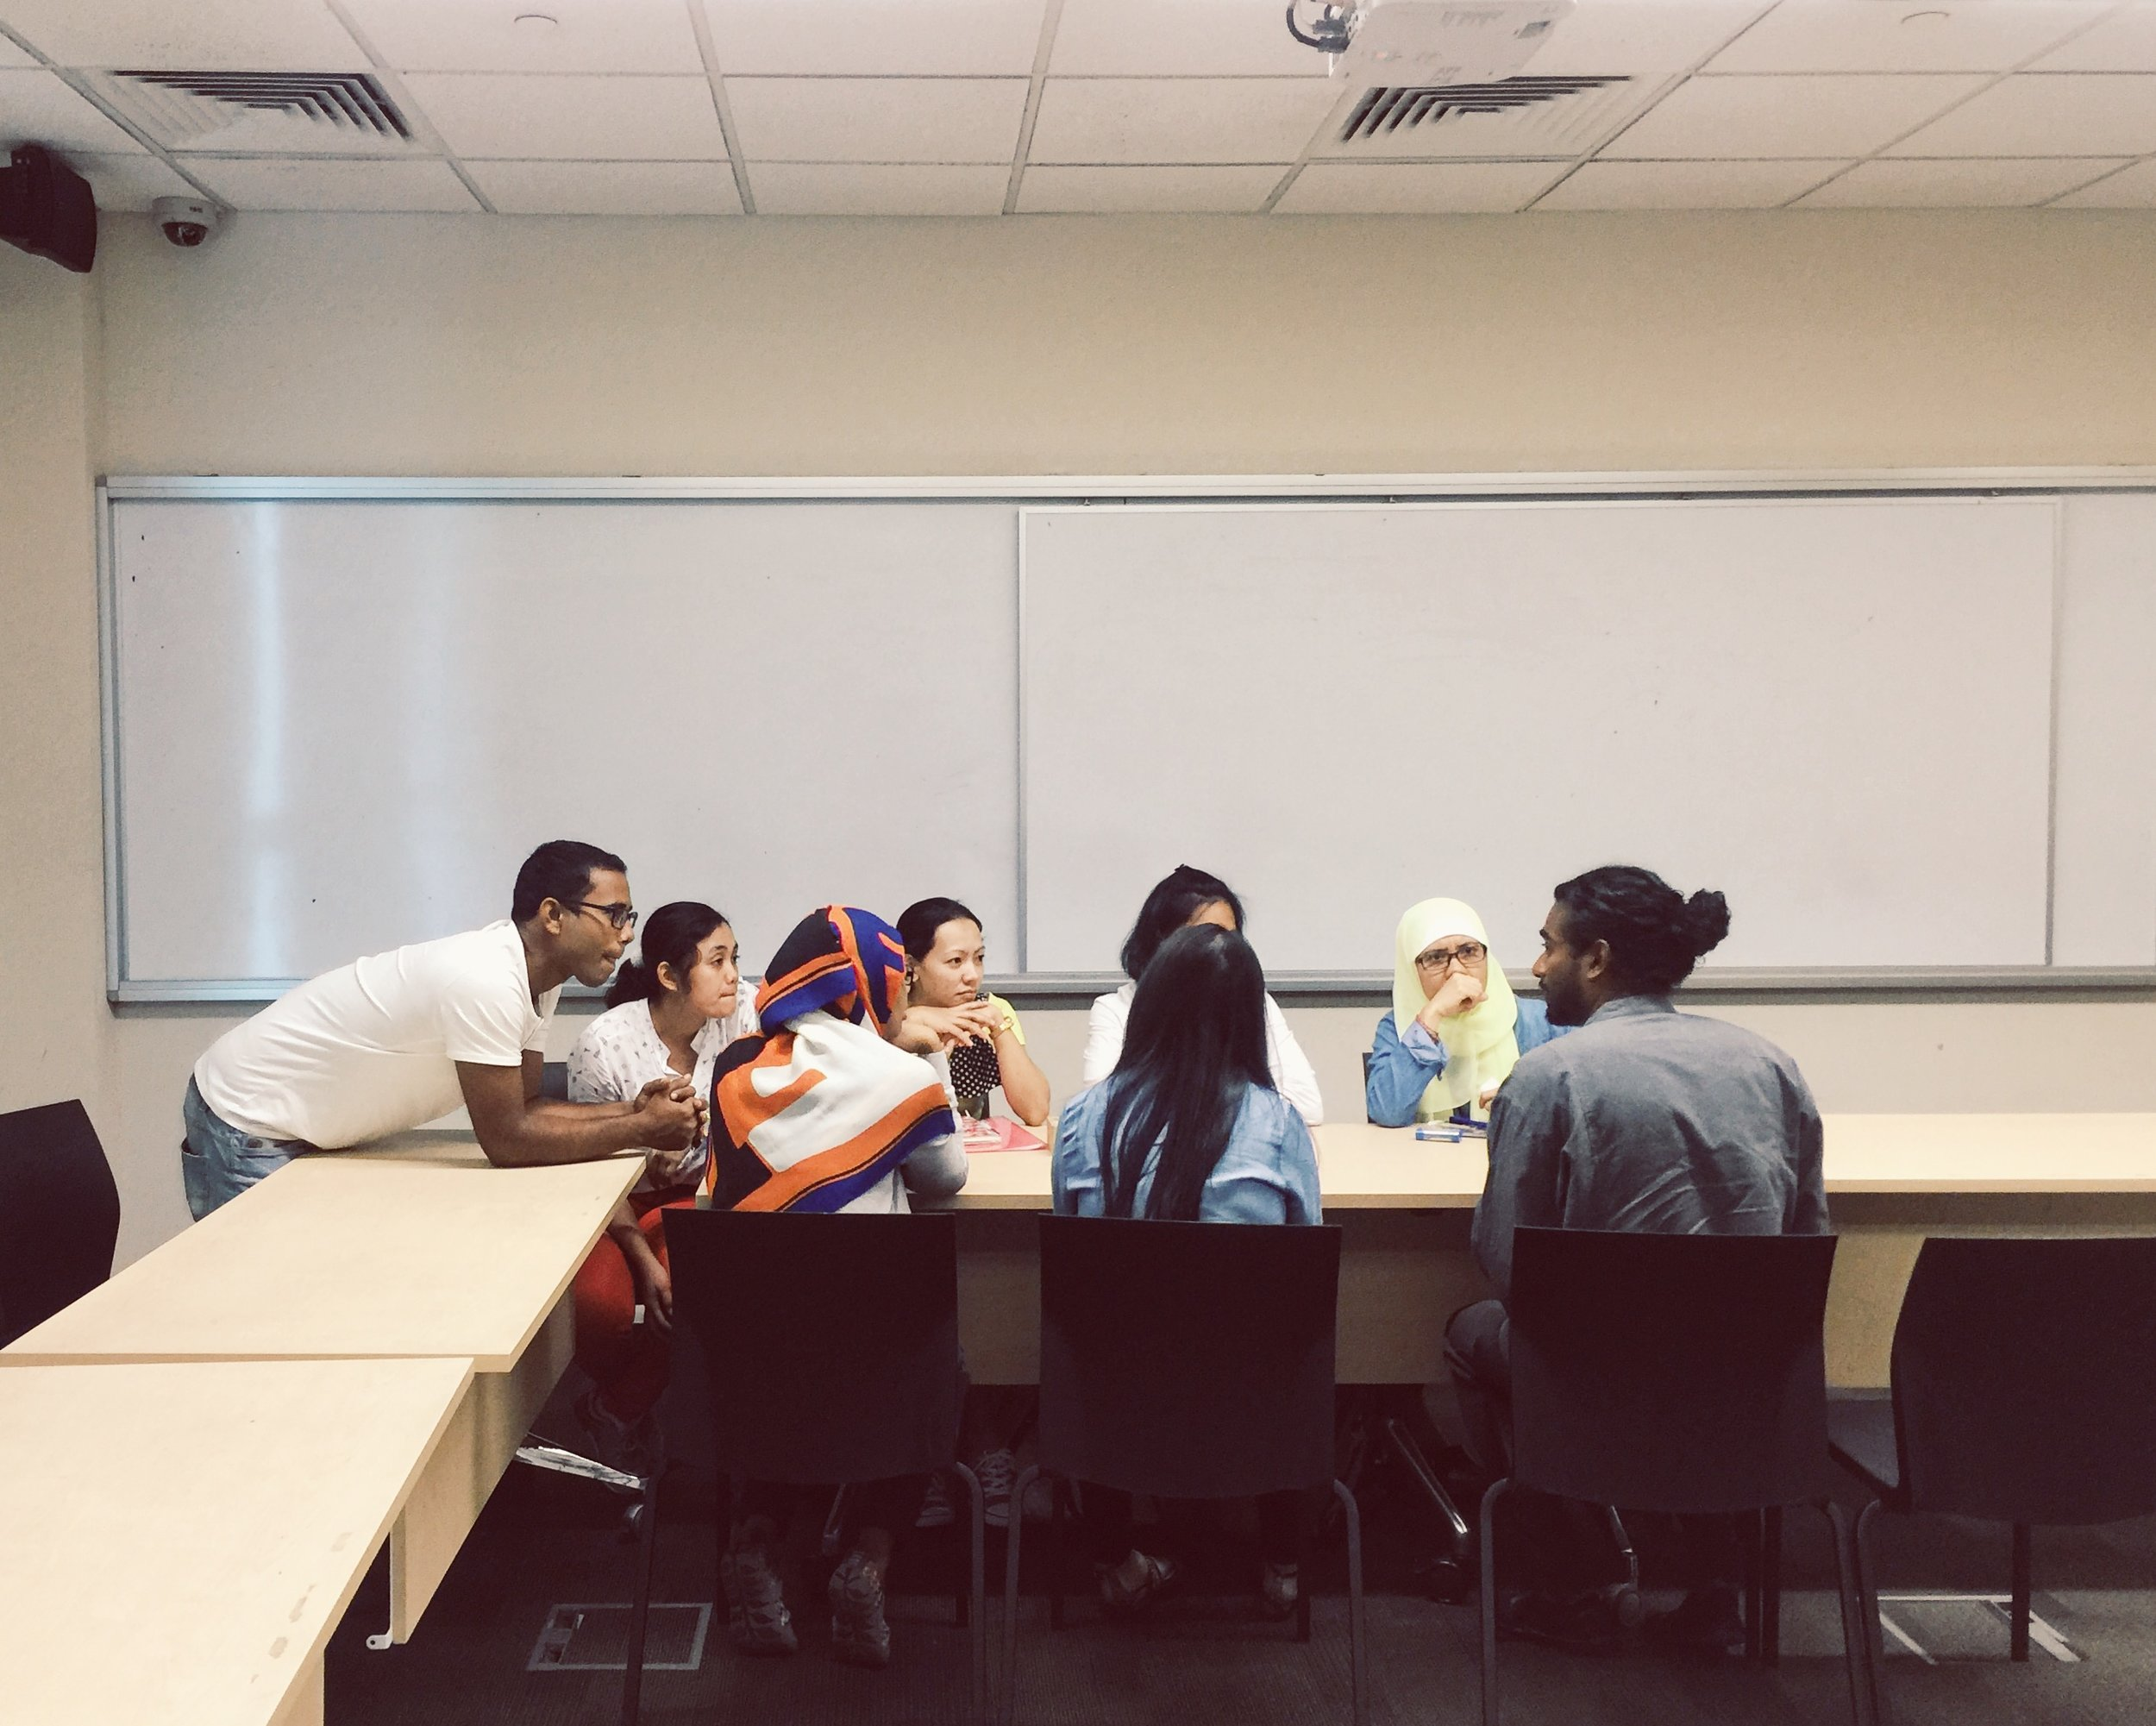 Initial meeting with the workers at NUS (National University Singapore).